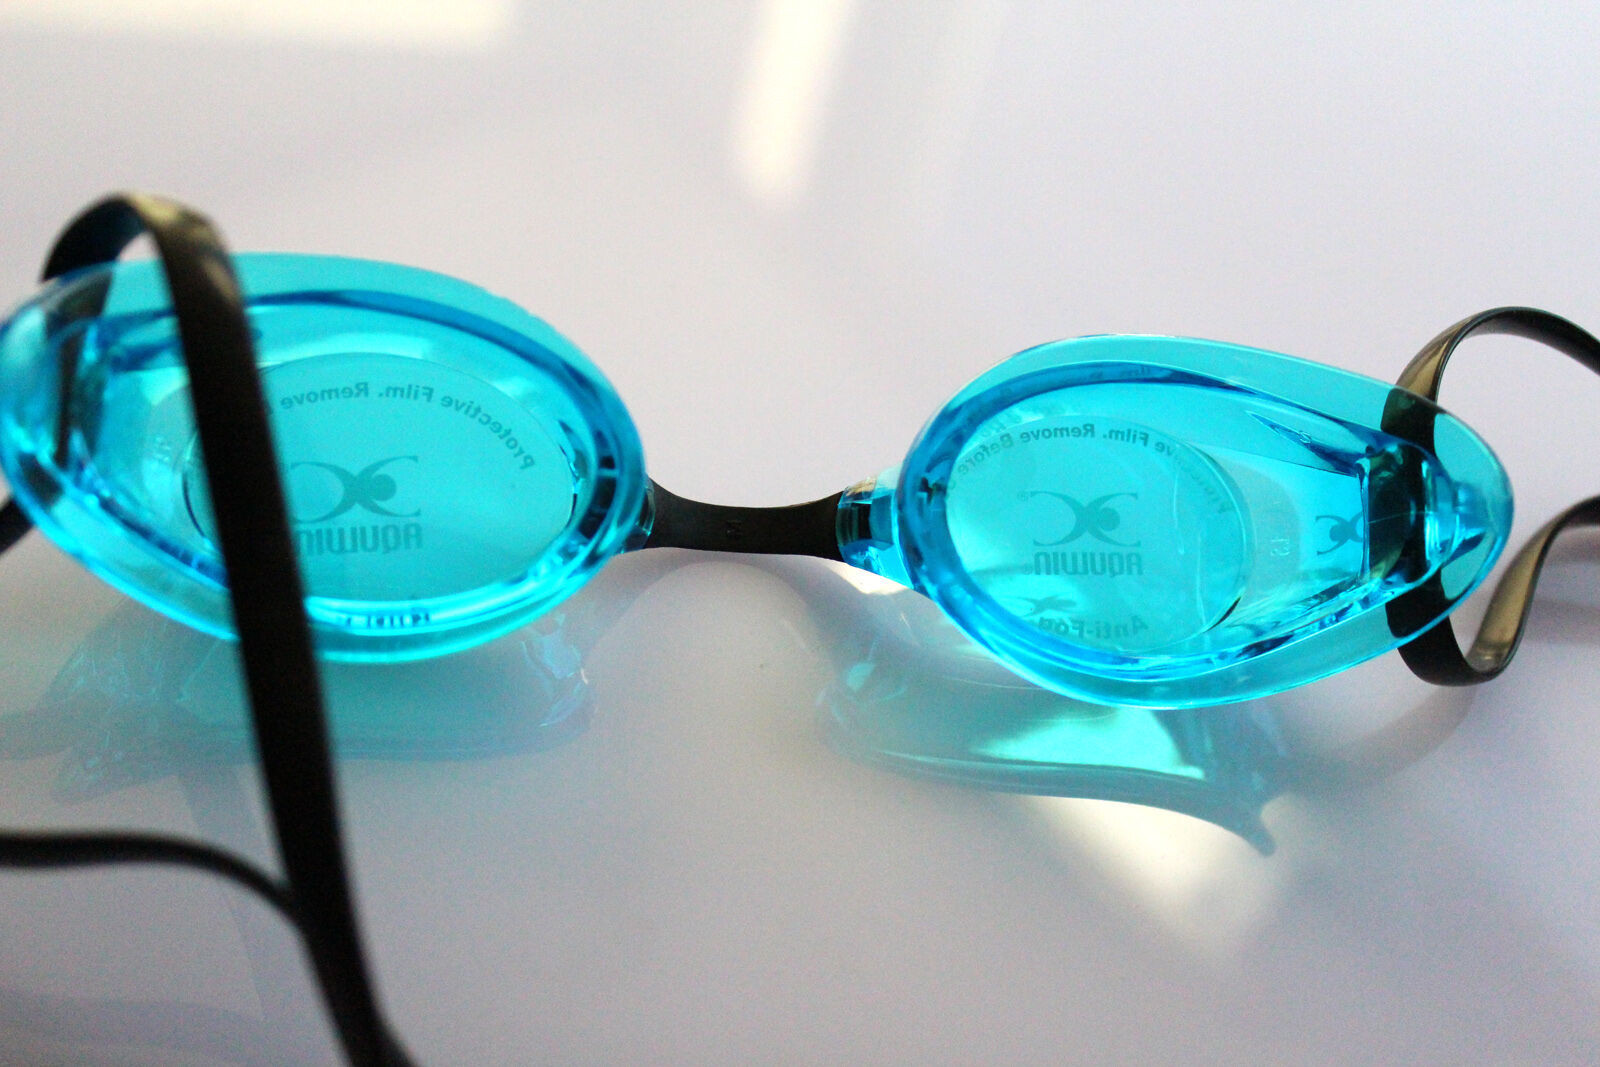 Swedish Optical Swim Swimming Goggles CO-34 AQBK Nearsight Diopter -1.5 to -8